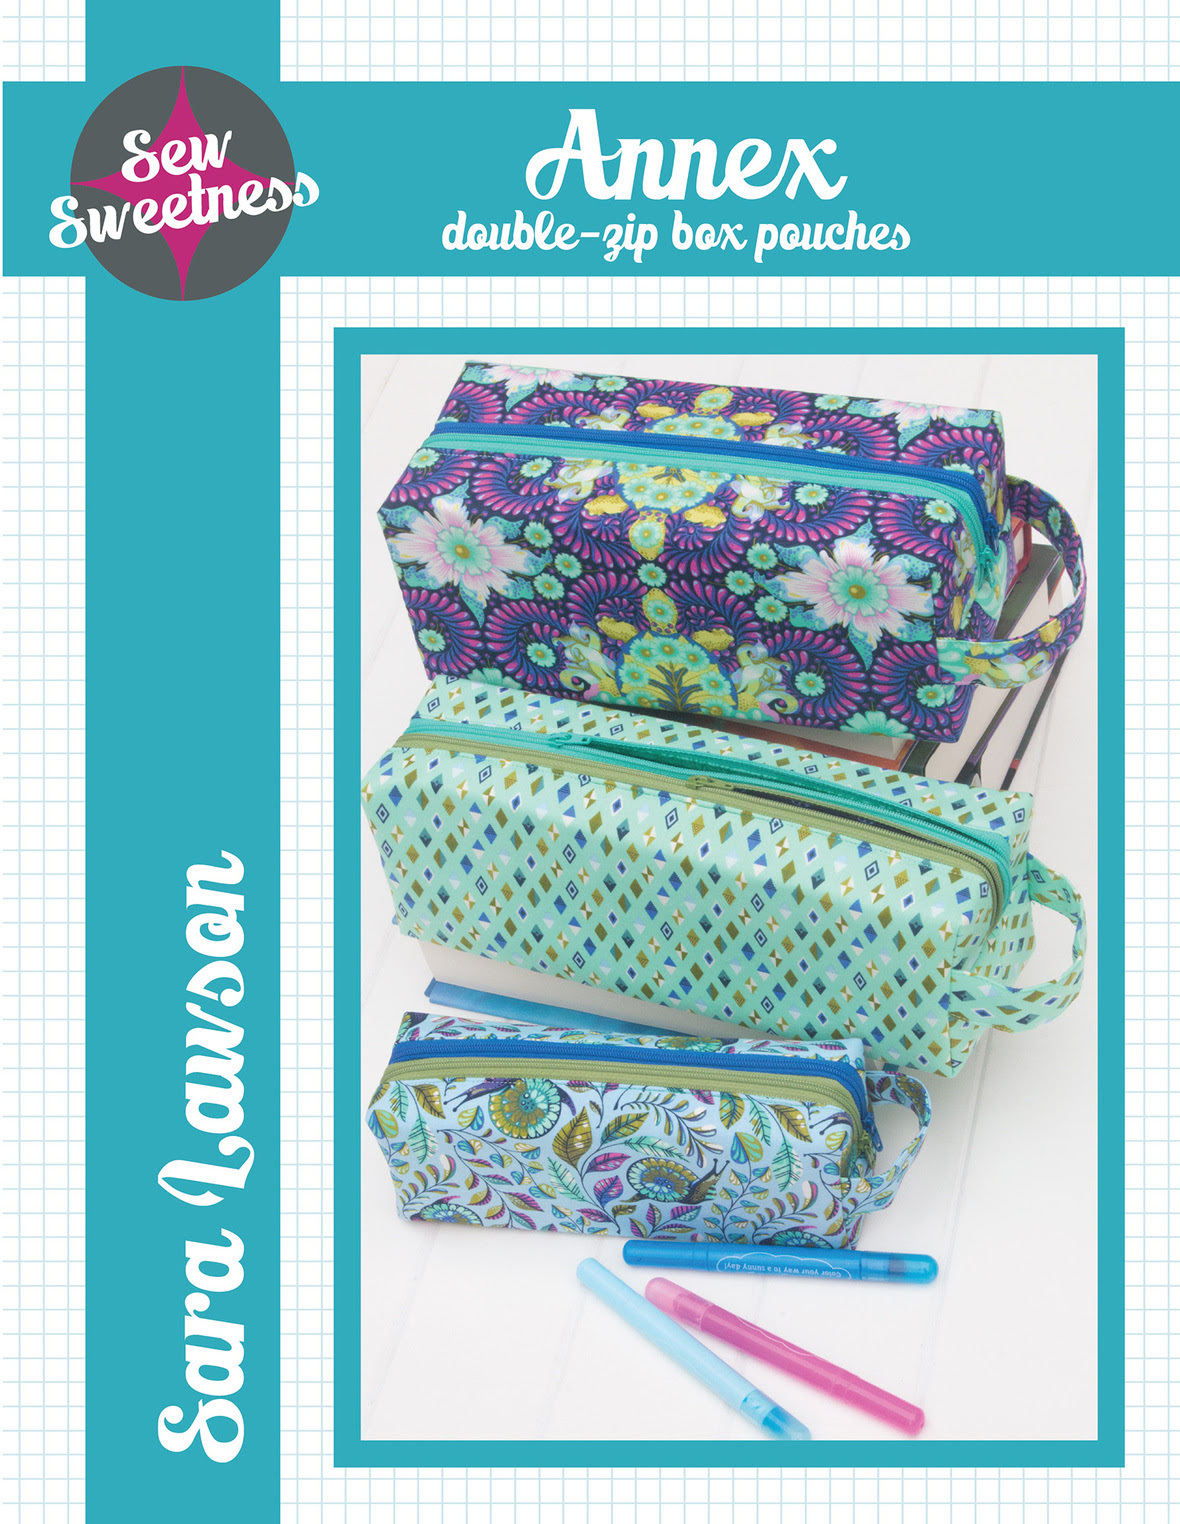 sew sweetness  annex double zip box pouch sewing pattern